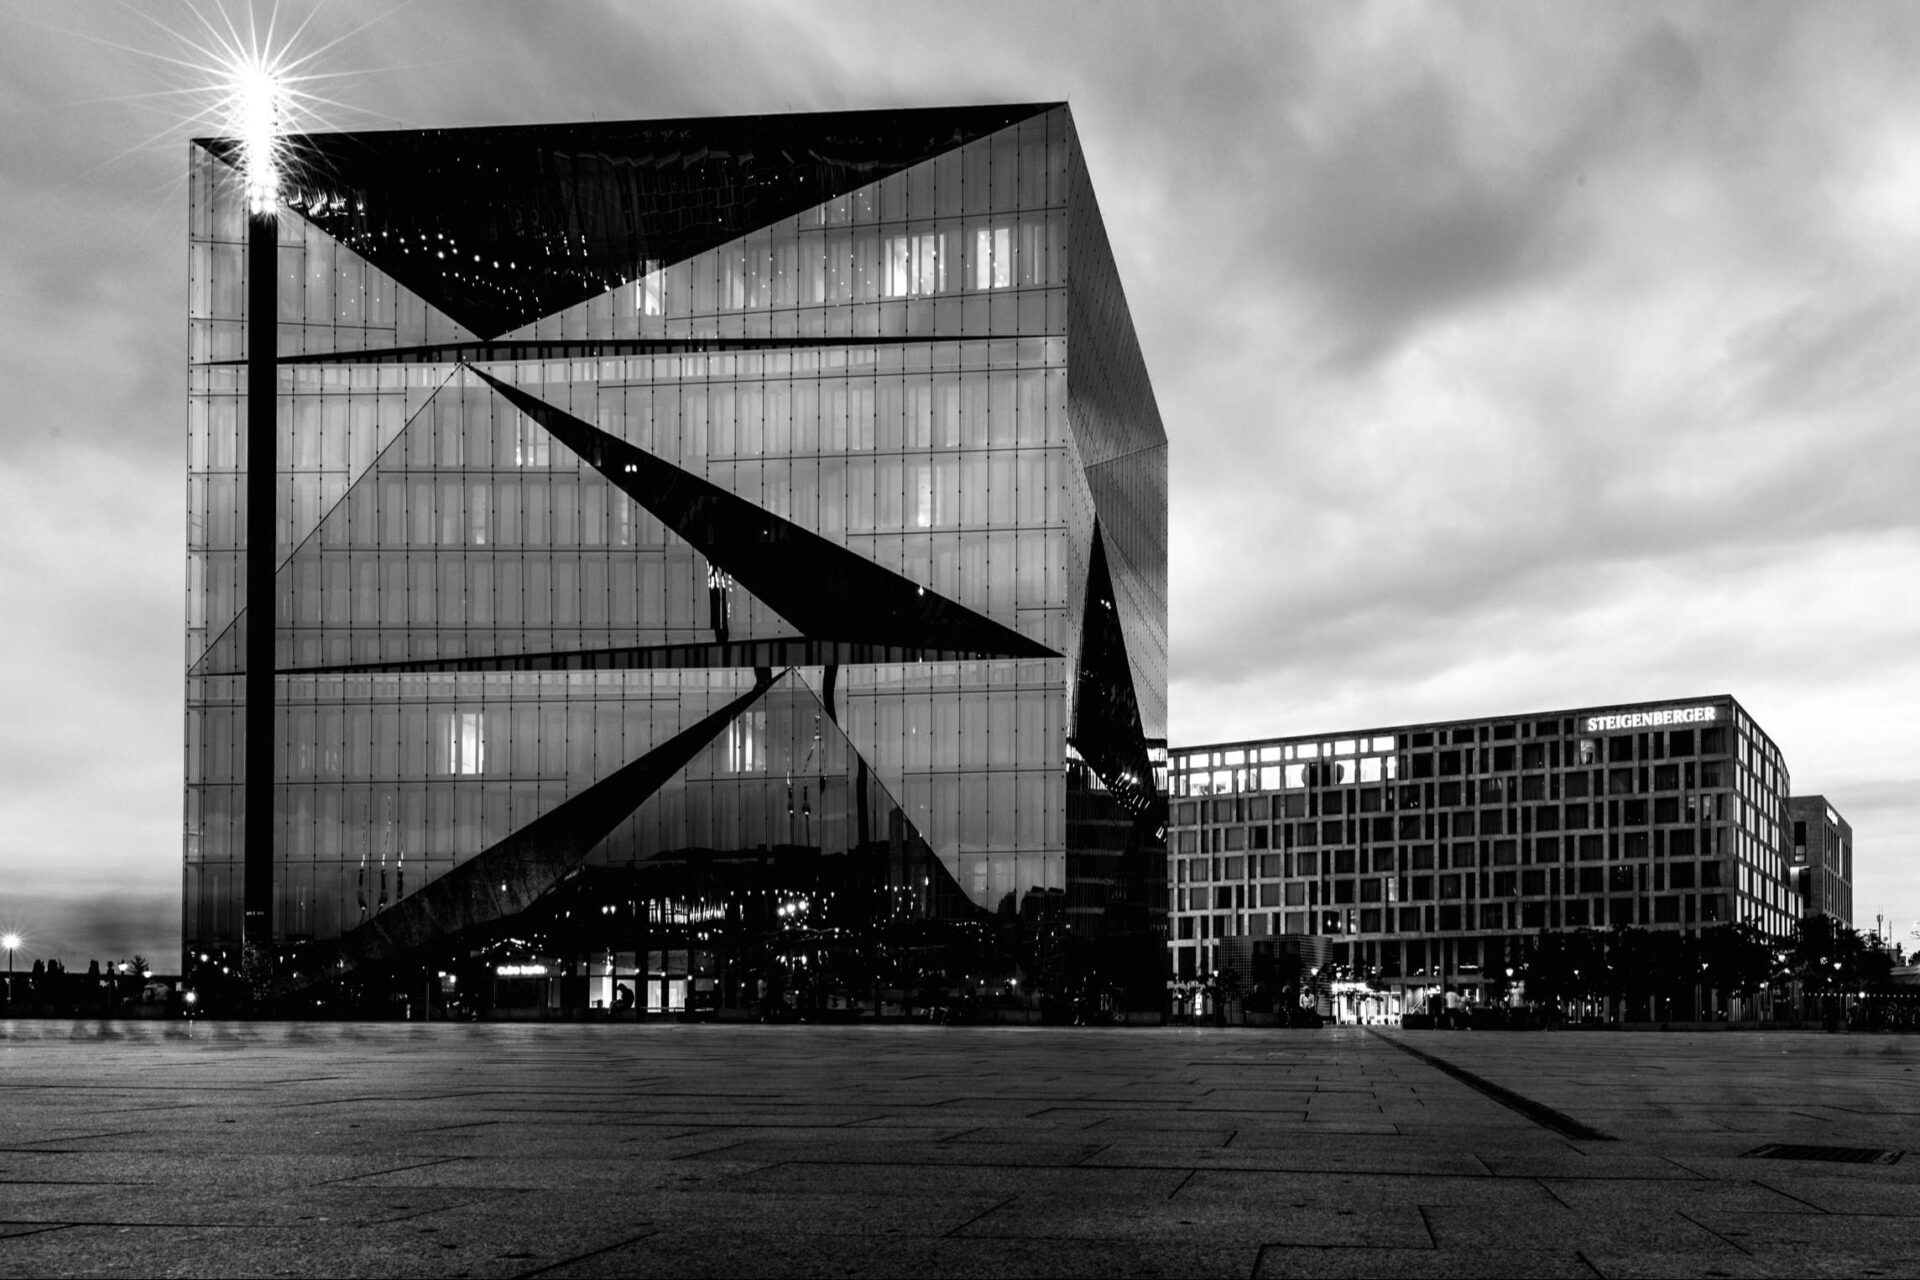 The Cube in the Evening, Berlin, Washingtonplatz